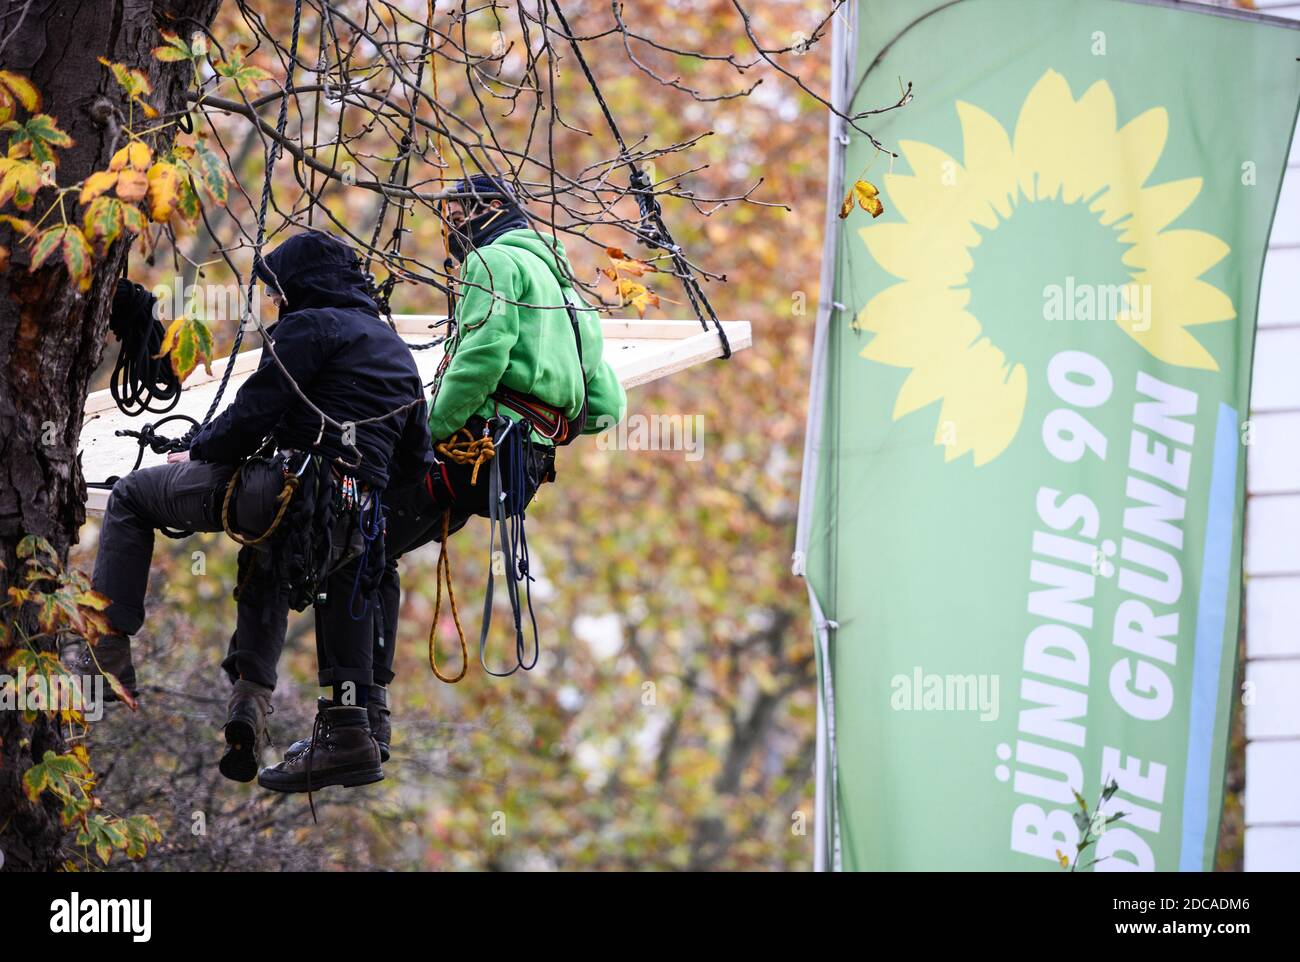 Wiesbaden, Germany. 20th Nov, 2020. Two activists hover in front of the flag of Bündnis90/Die Grünen. Activists from Robin Wood, environmental and nature conservation organisation, have occupied two trees in front of the party headquarters of the Hessian Greens in the state capital. The organisation is protesting against the clearings in connection with the expansion of the A49 and wants to remind the Greens in Hesse of their political responsibility. Credit: Andreas Arnold/dpa/Alamy Live News Stock Photo